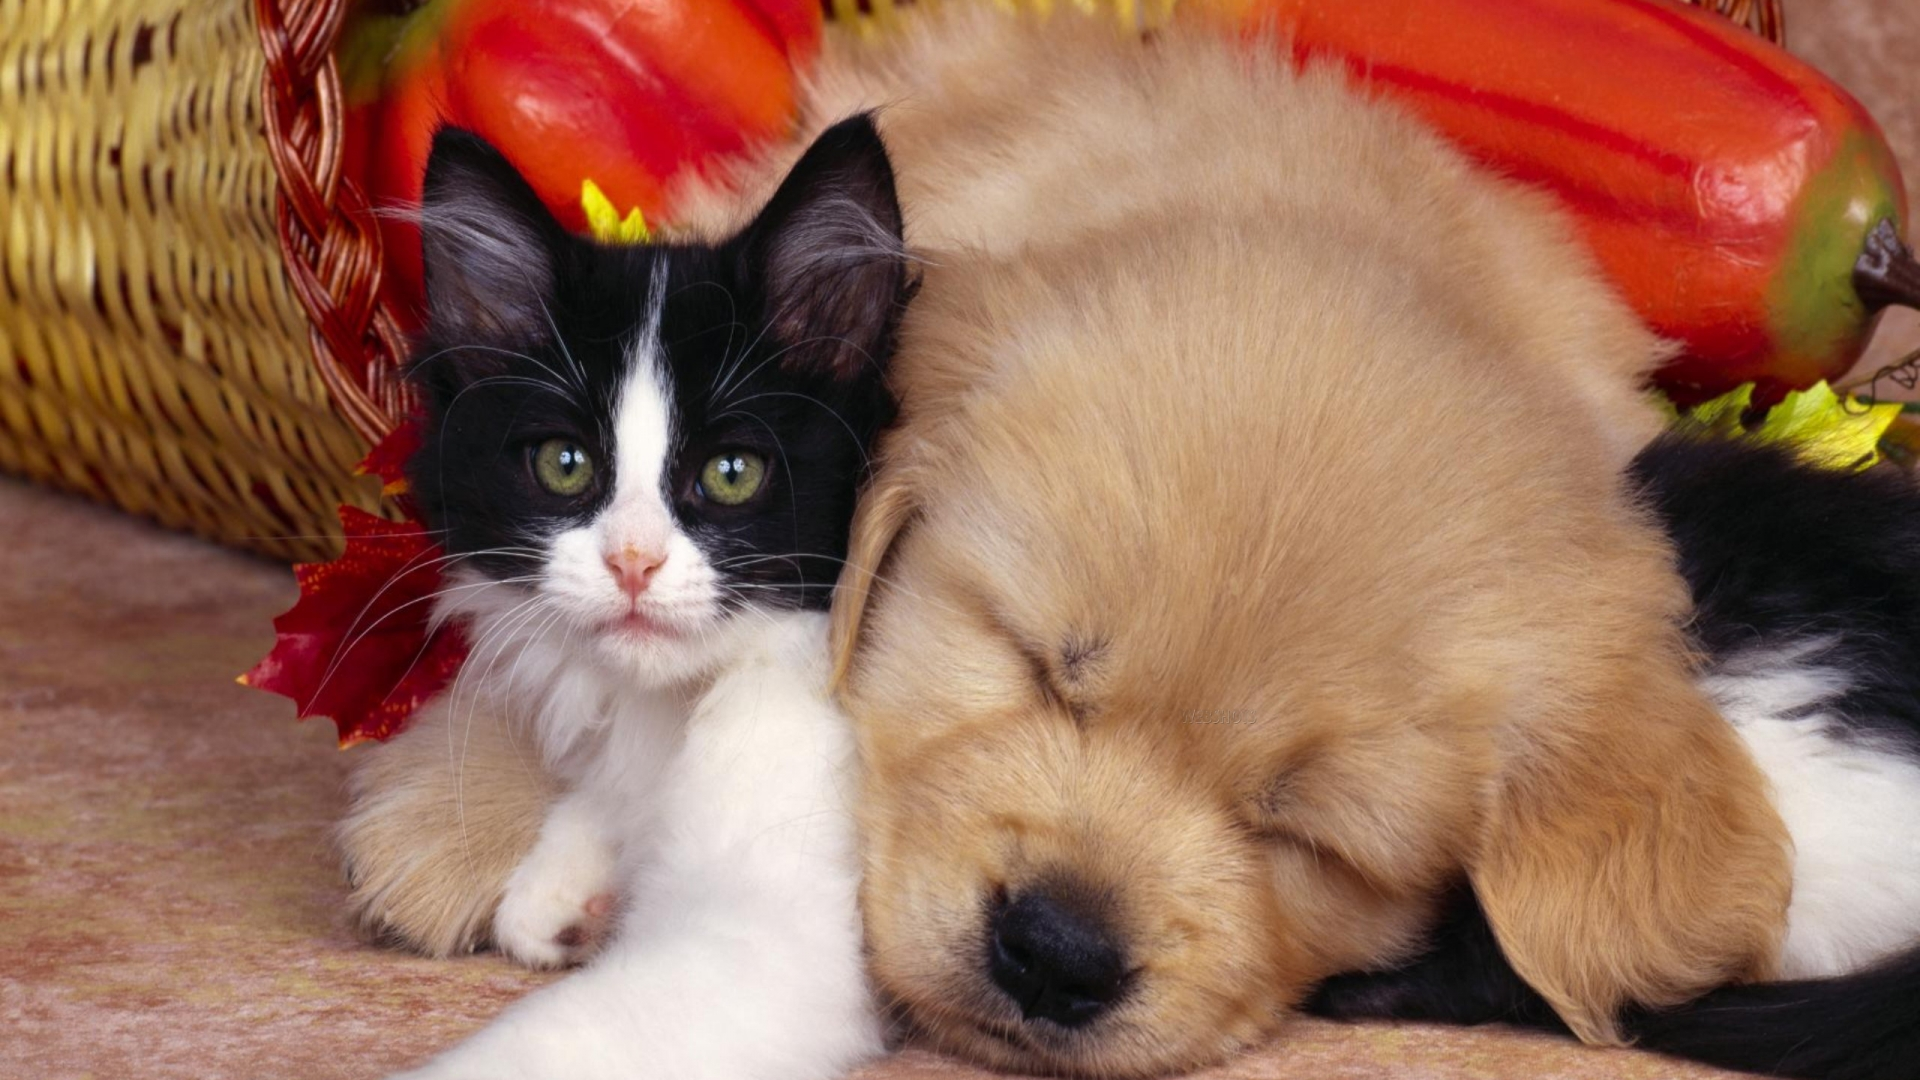 Cute dog and cat Animals Wallpaper Background 1920x1080   Fondo hd 1920x1080